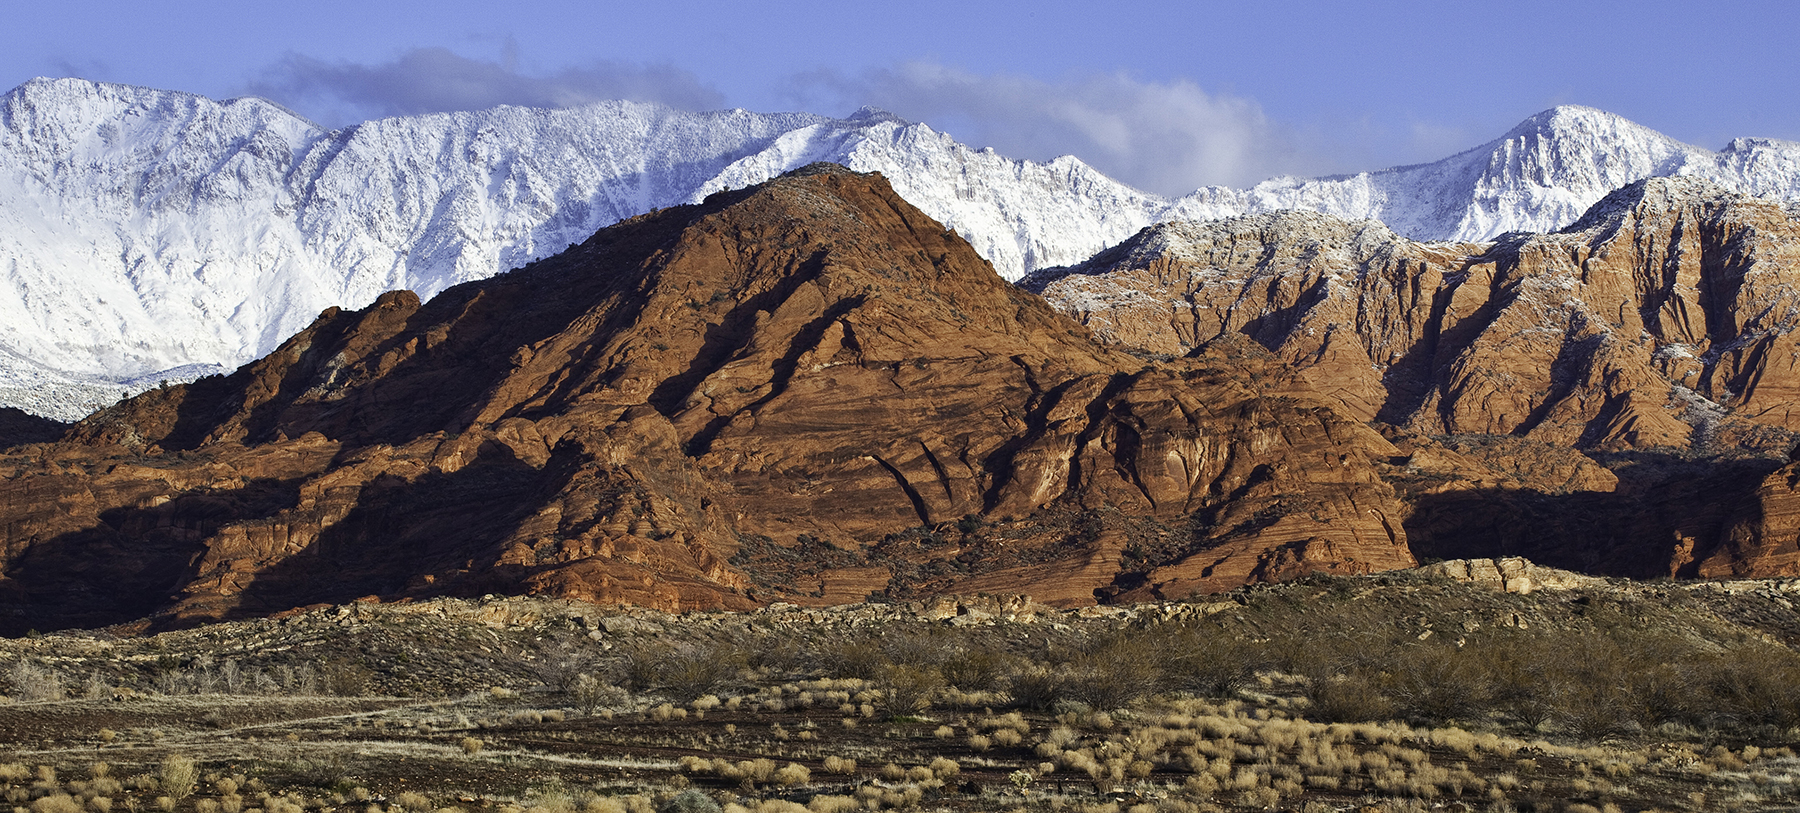 Red Cliffs NCA in the winter with snow-capped peaks in the distance.